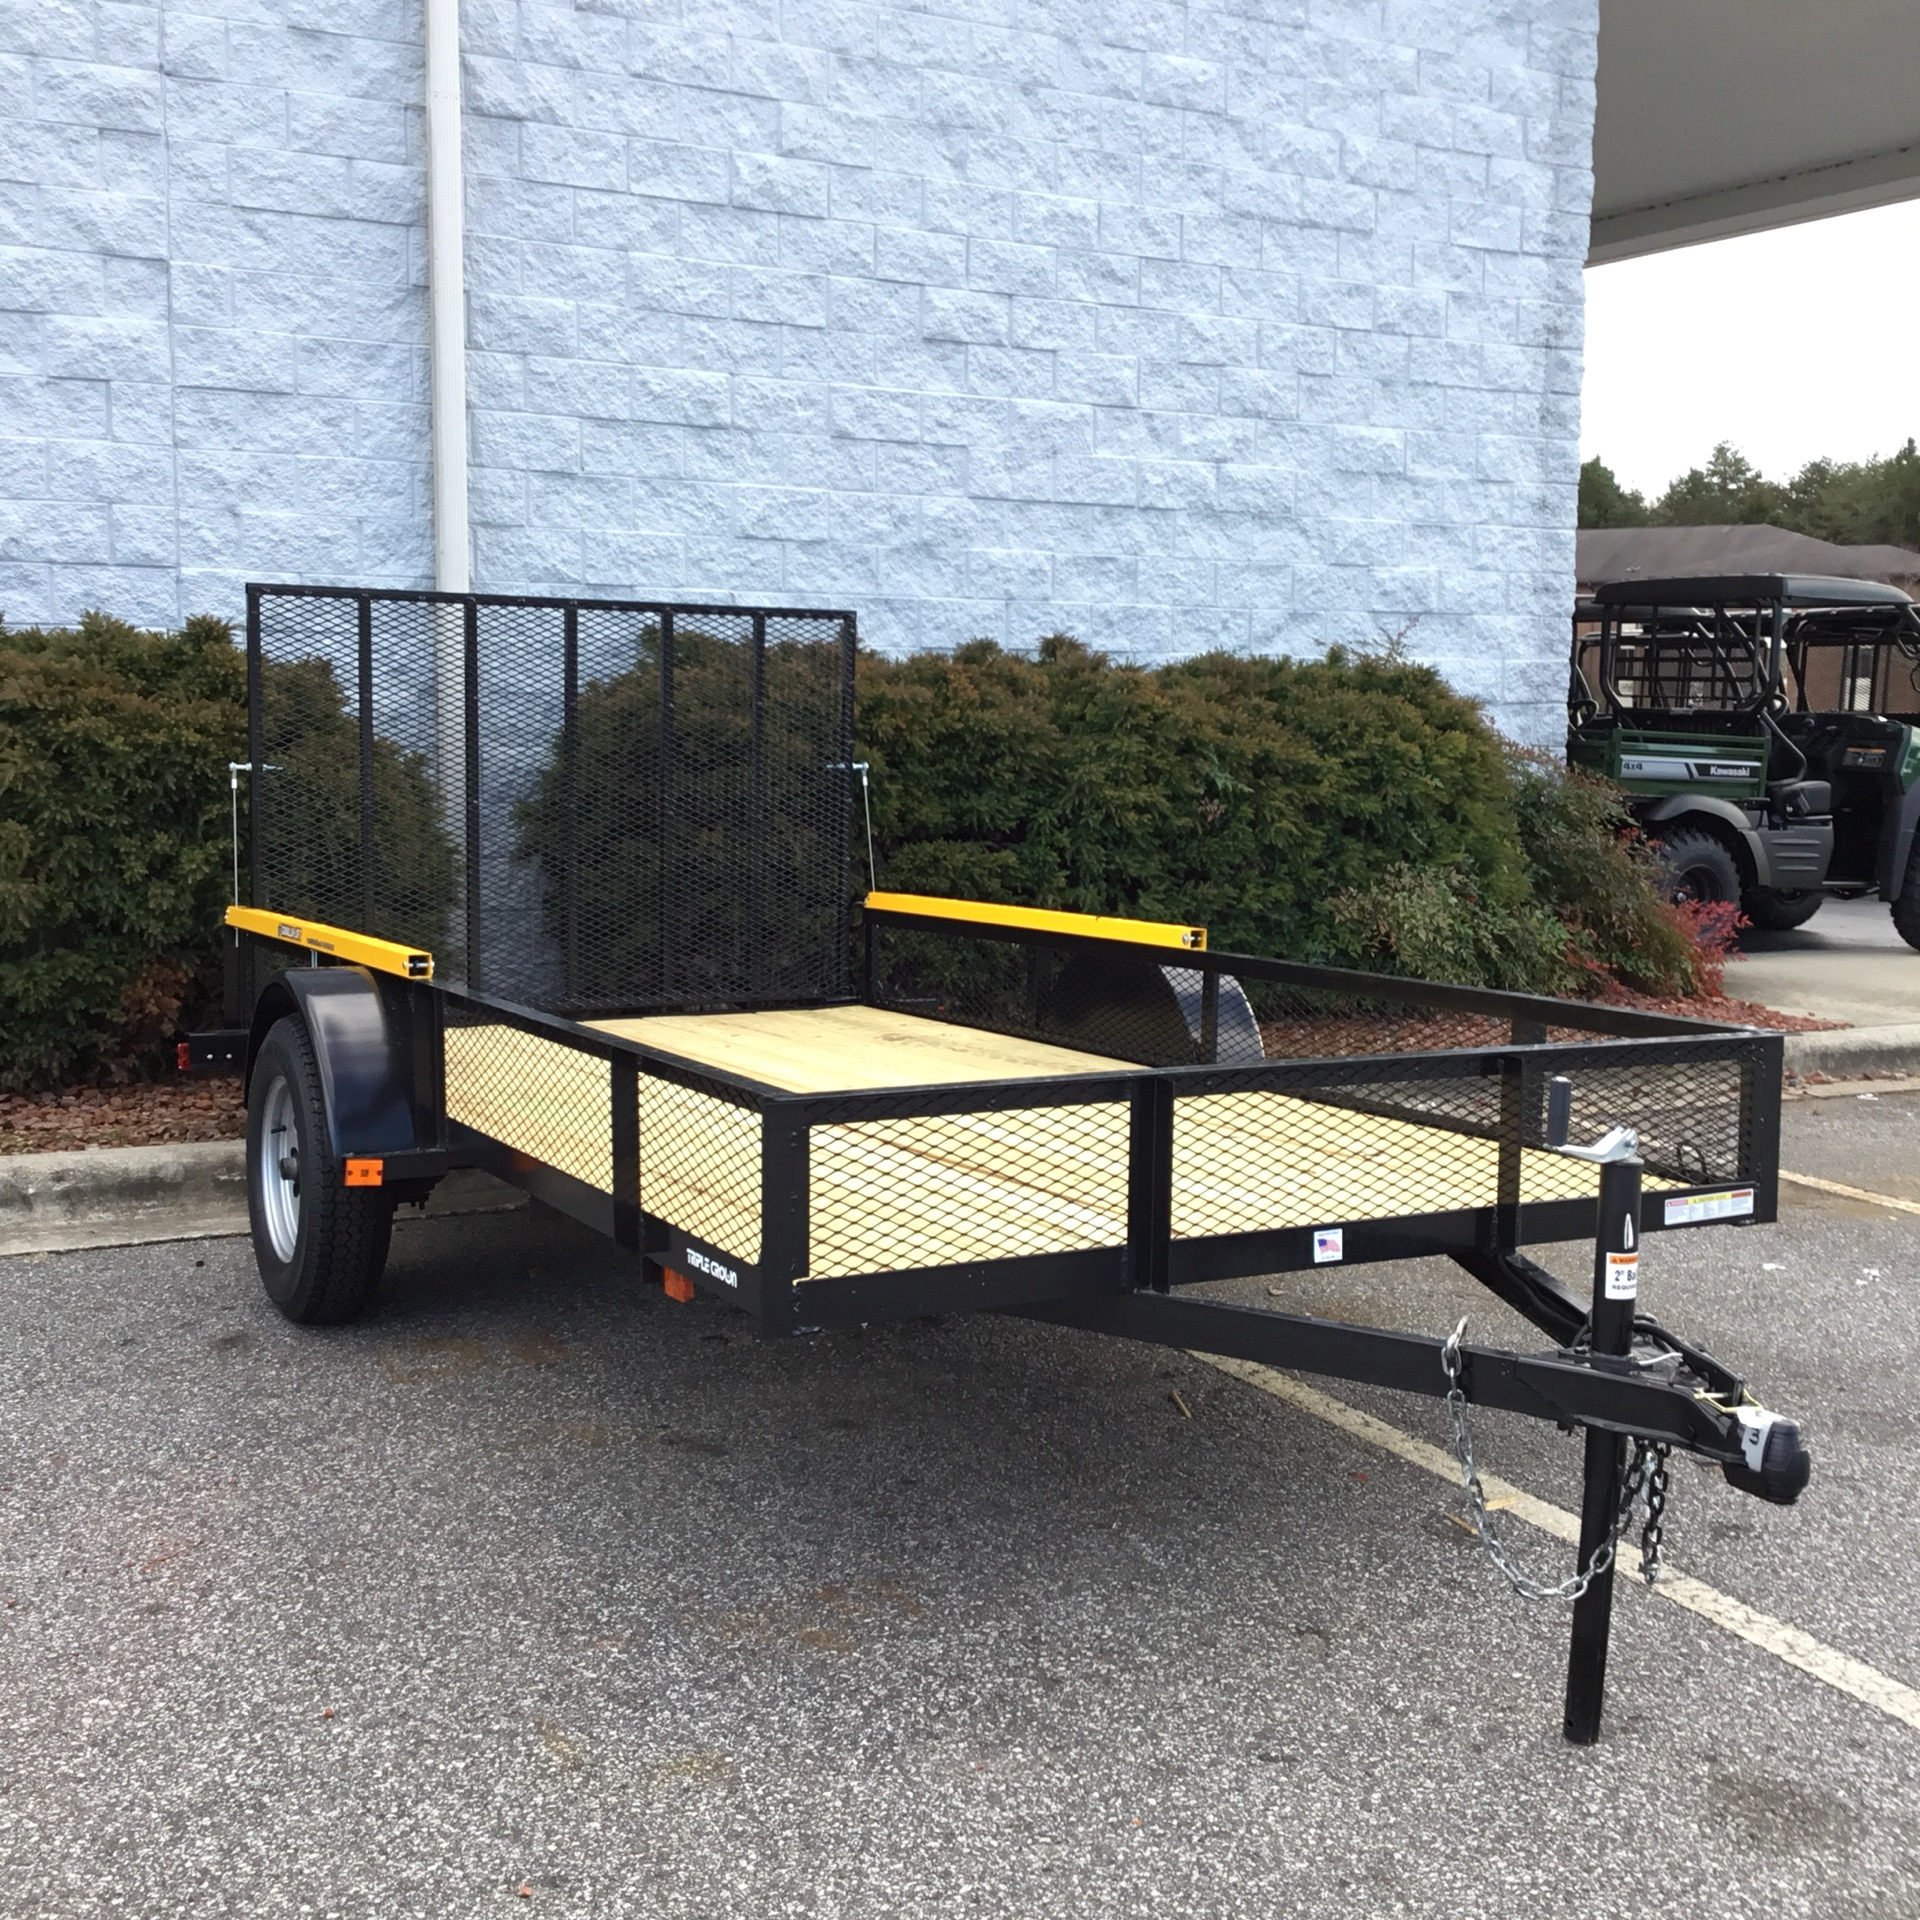 2020 TRIPLE CROWN 6.6 X 12 UTILITY TRAILER in Hickory, North Carolina - Photo 4